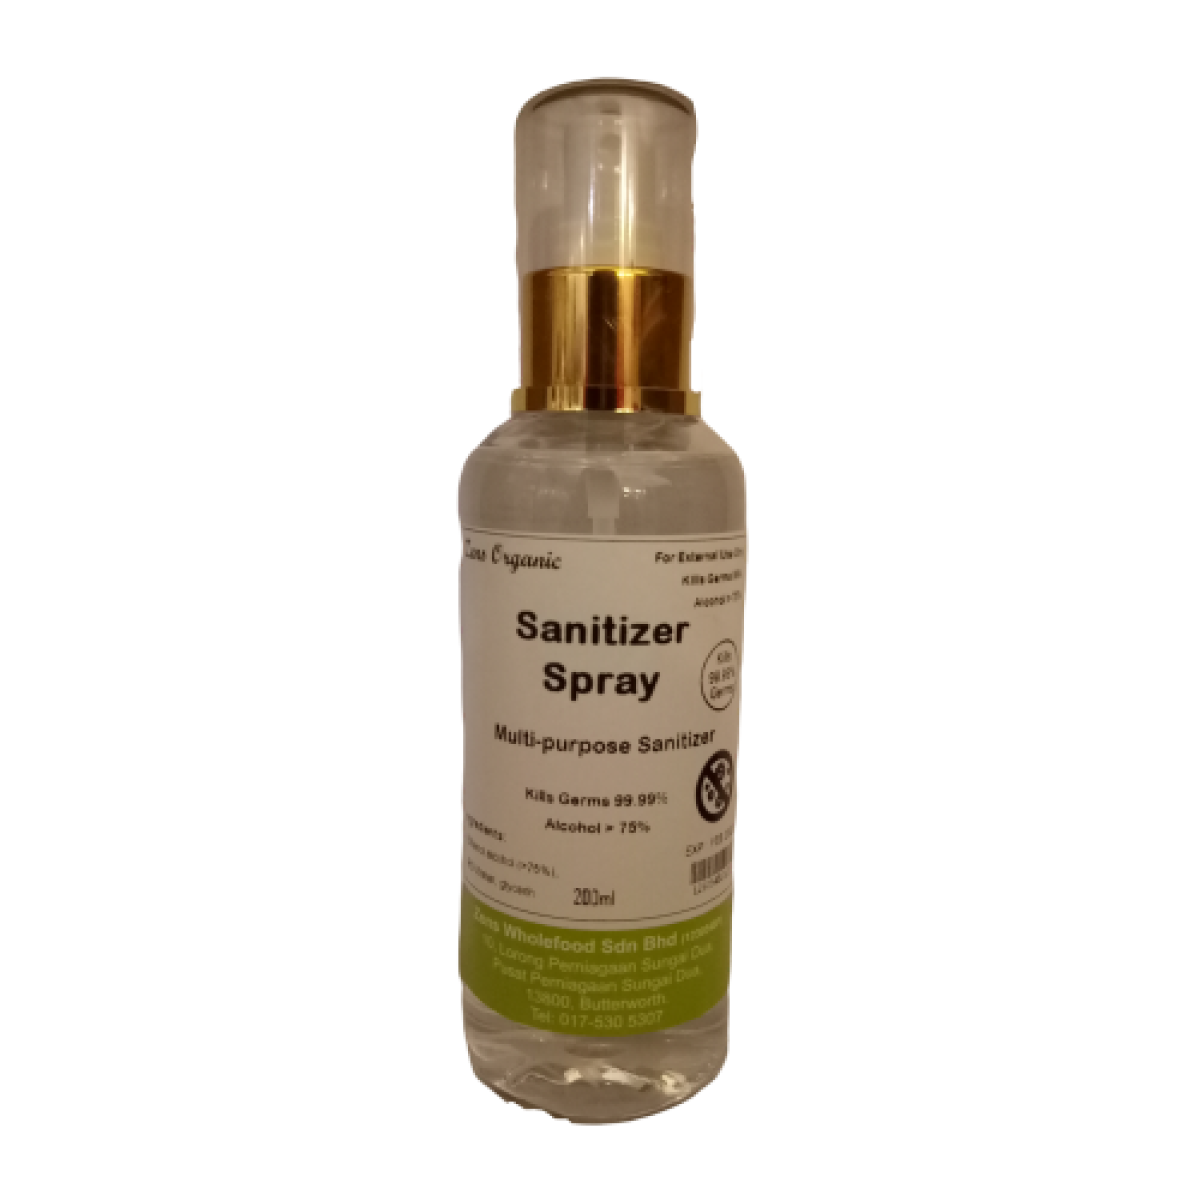 Zens Organic Multi-Purpose Sanitizer Spray 200ml ( Ethanol 75% above, contains glycerin )